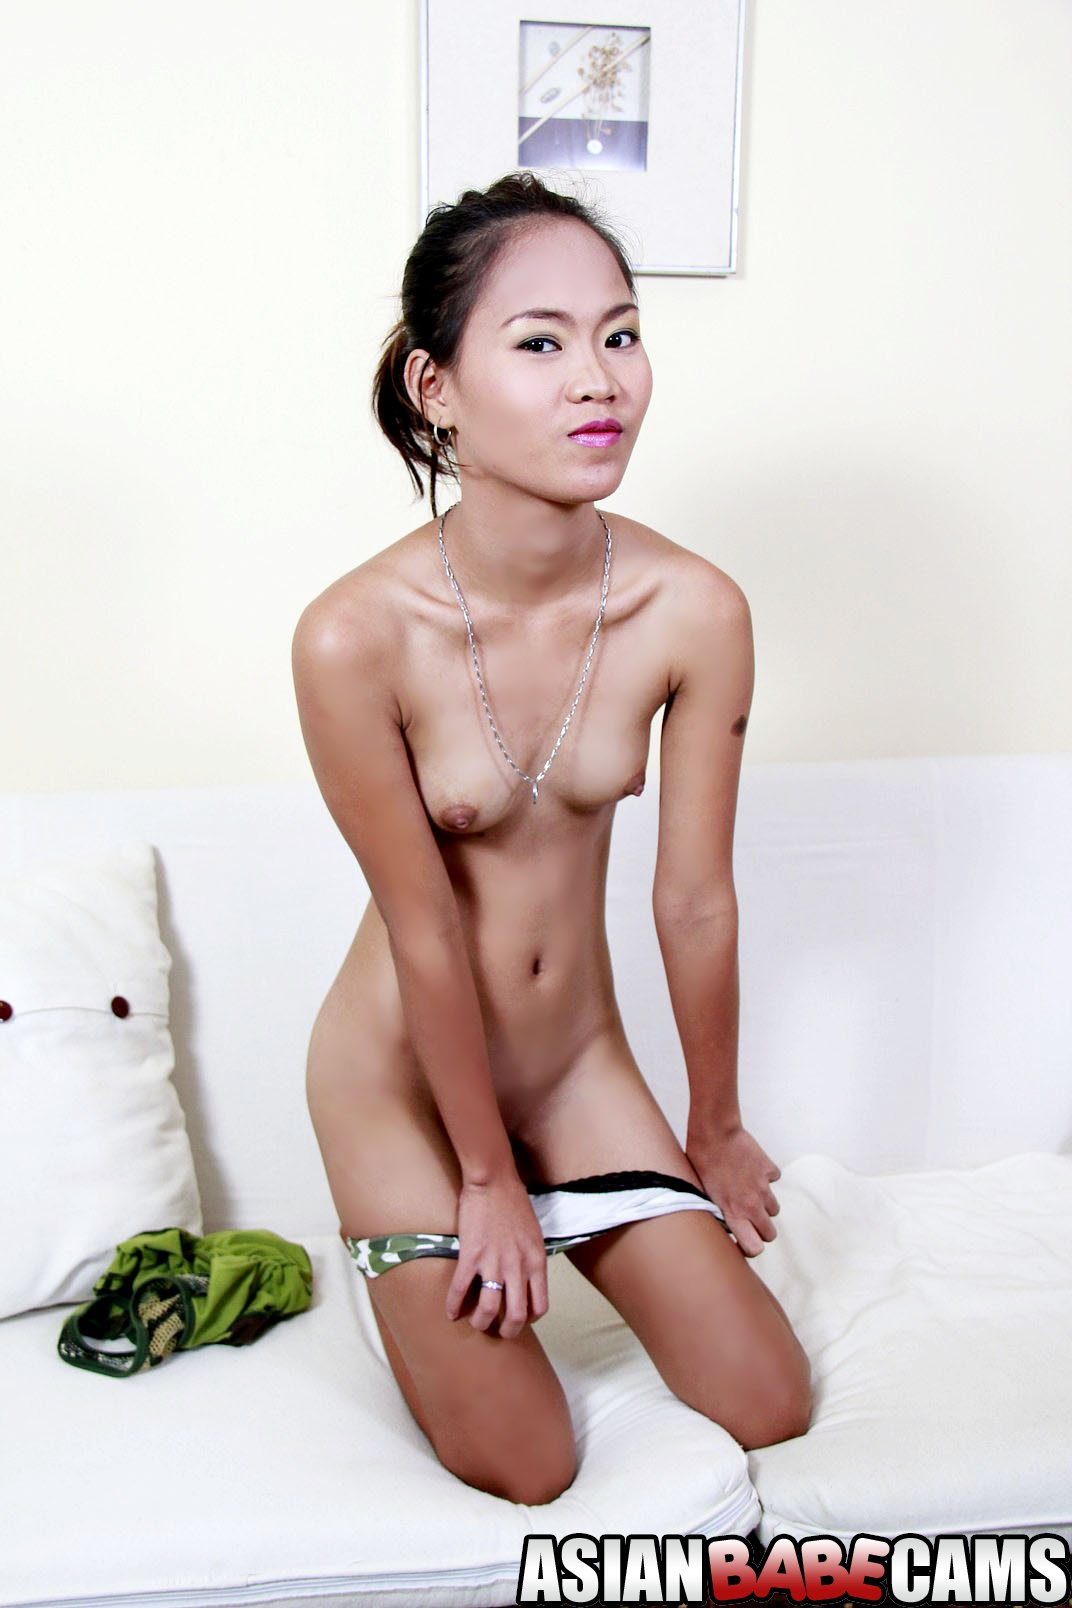 asian babe cams